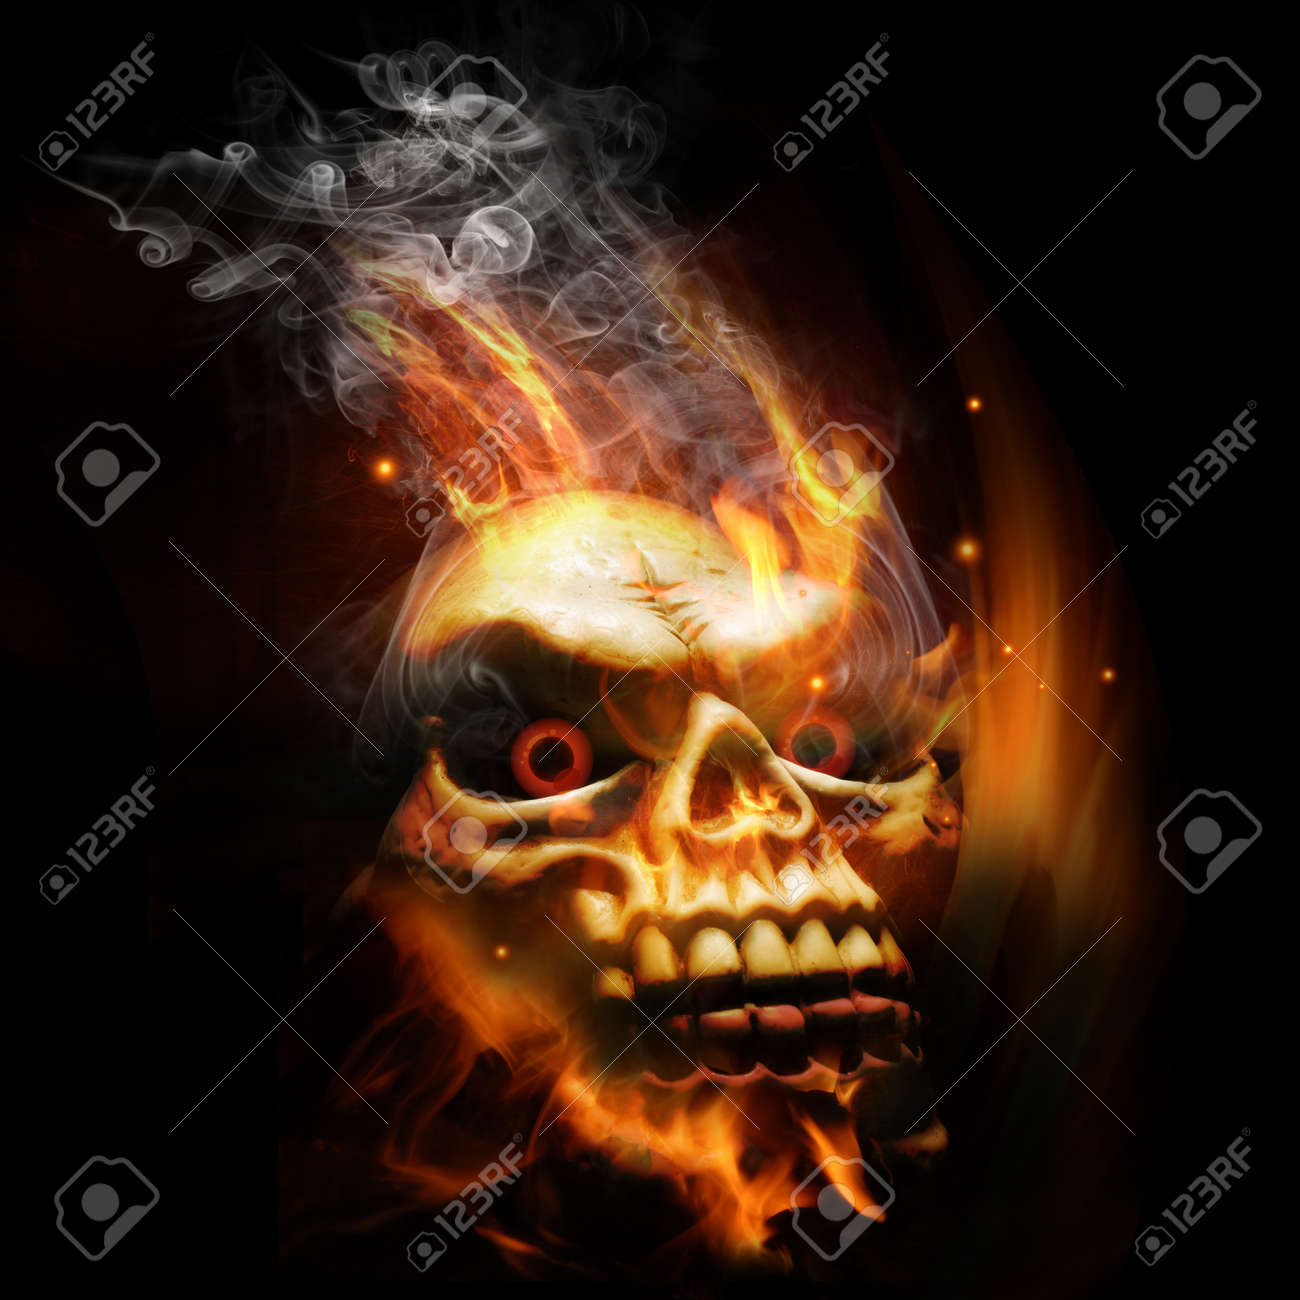 A burning skull with red eyes. Stock Photo - 8010952